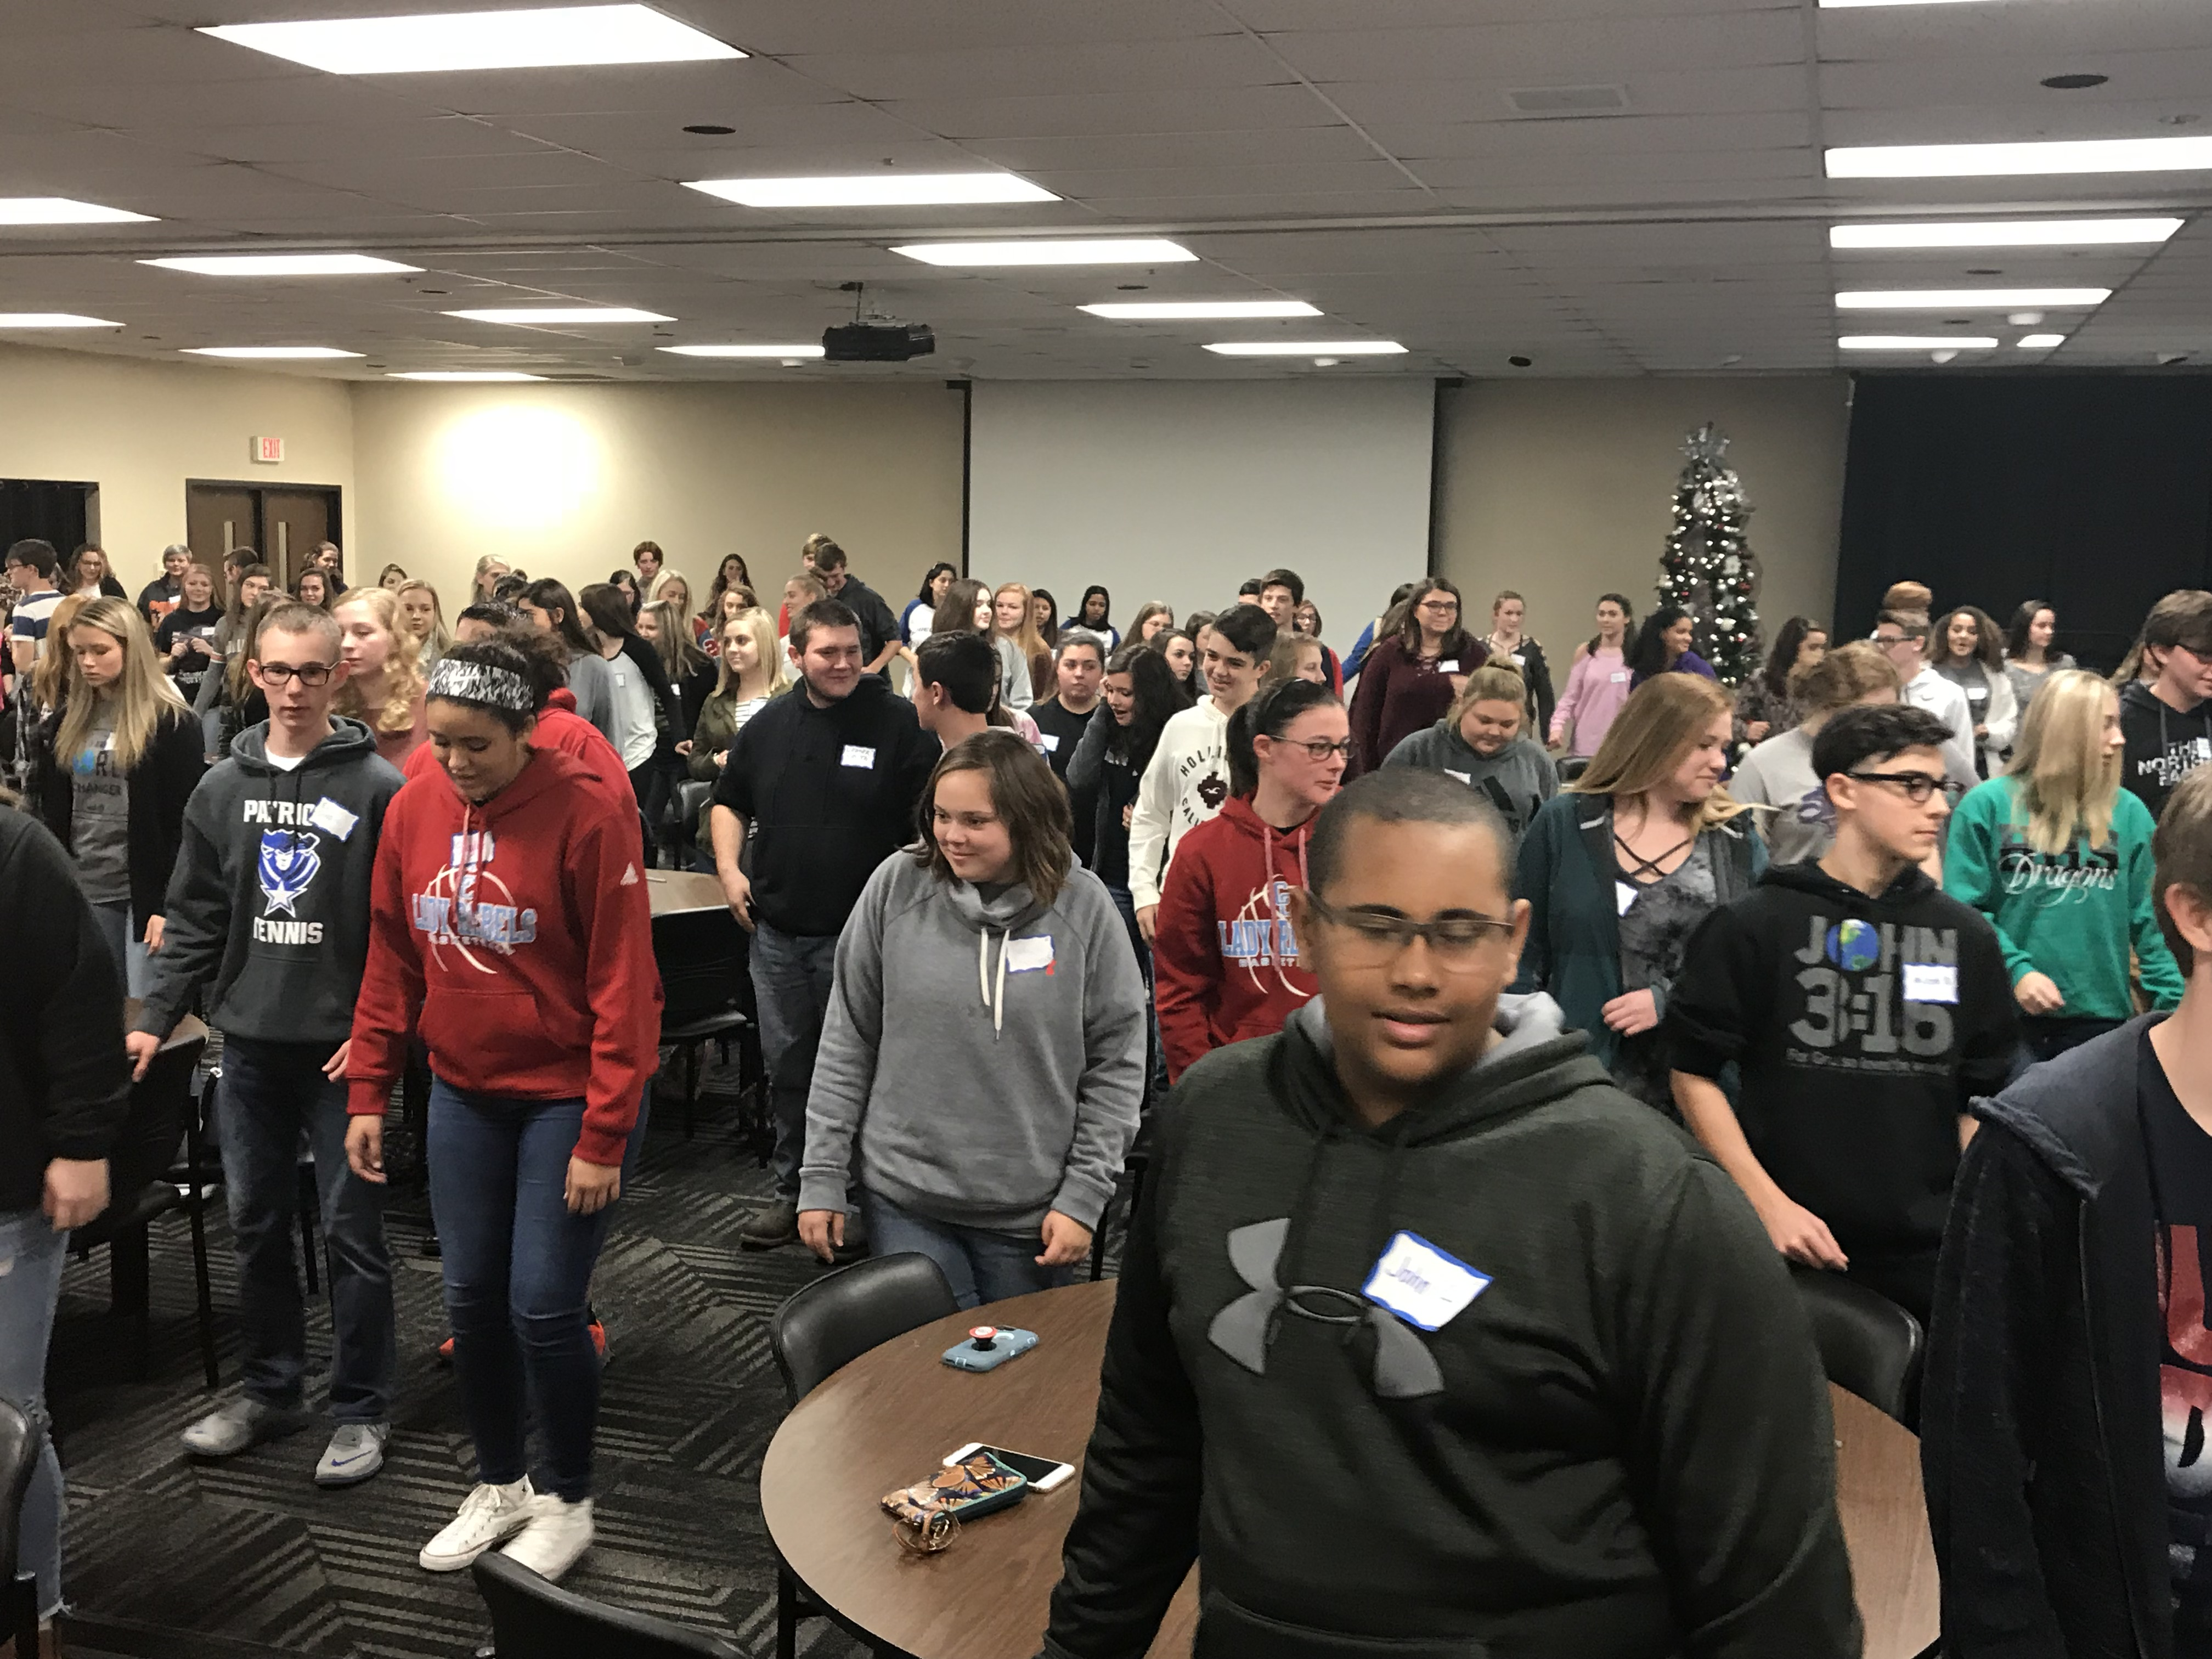 A group of fifteen students in 9th and 10th grades from CCHS attended the iBELIEVE Leadership Summit at Eastern Kentucky University on November 28, 2017.